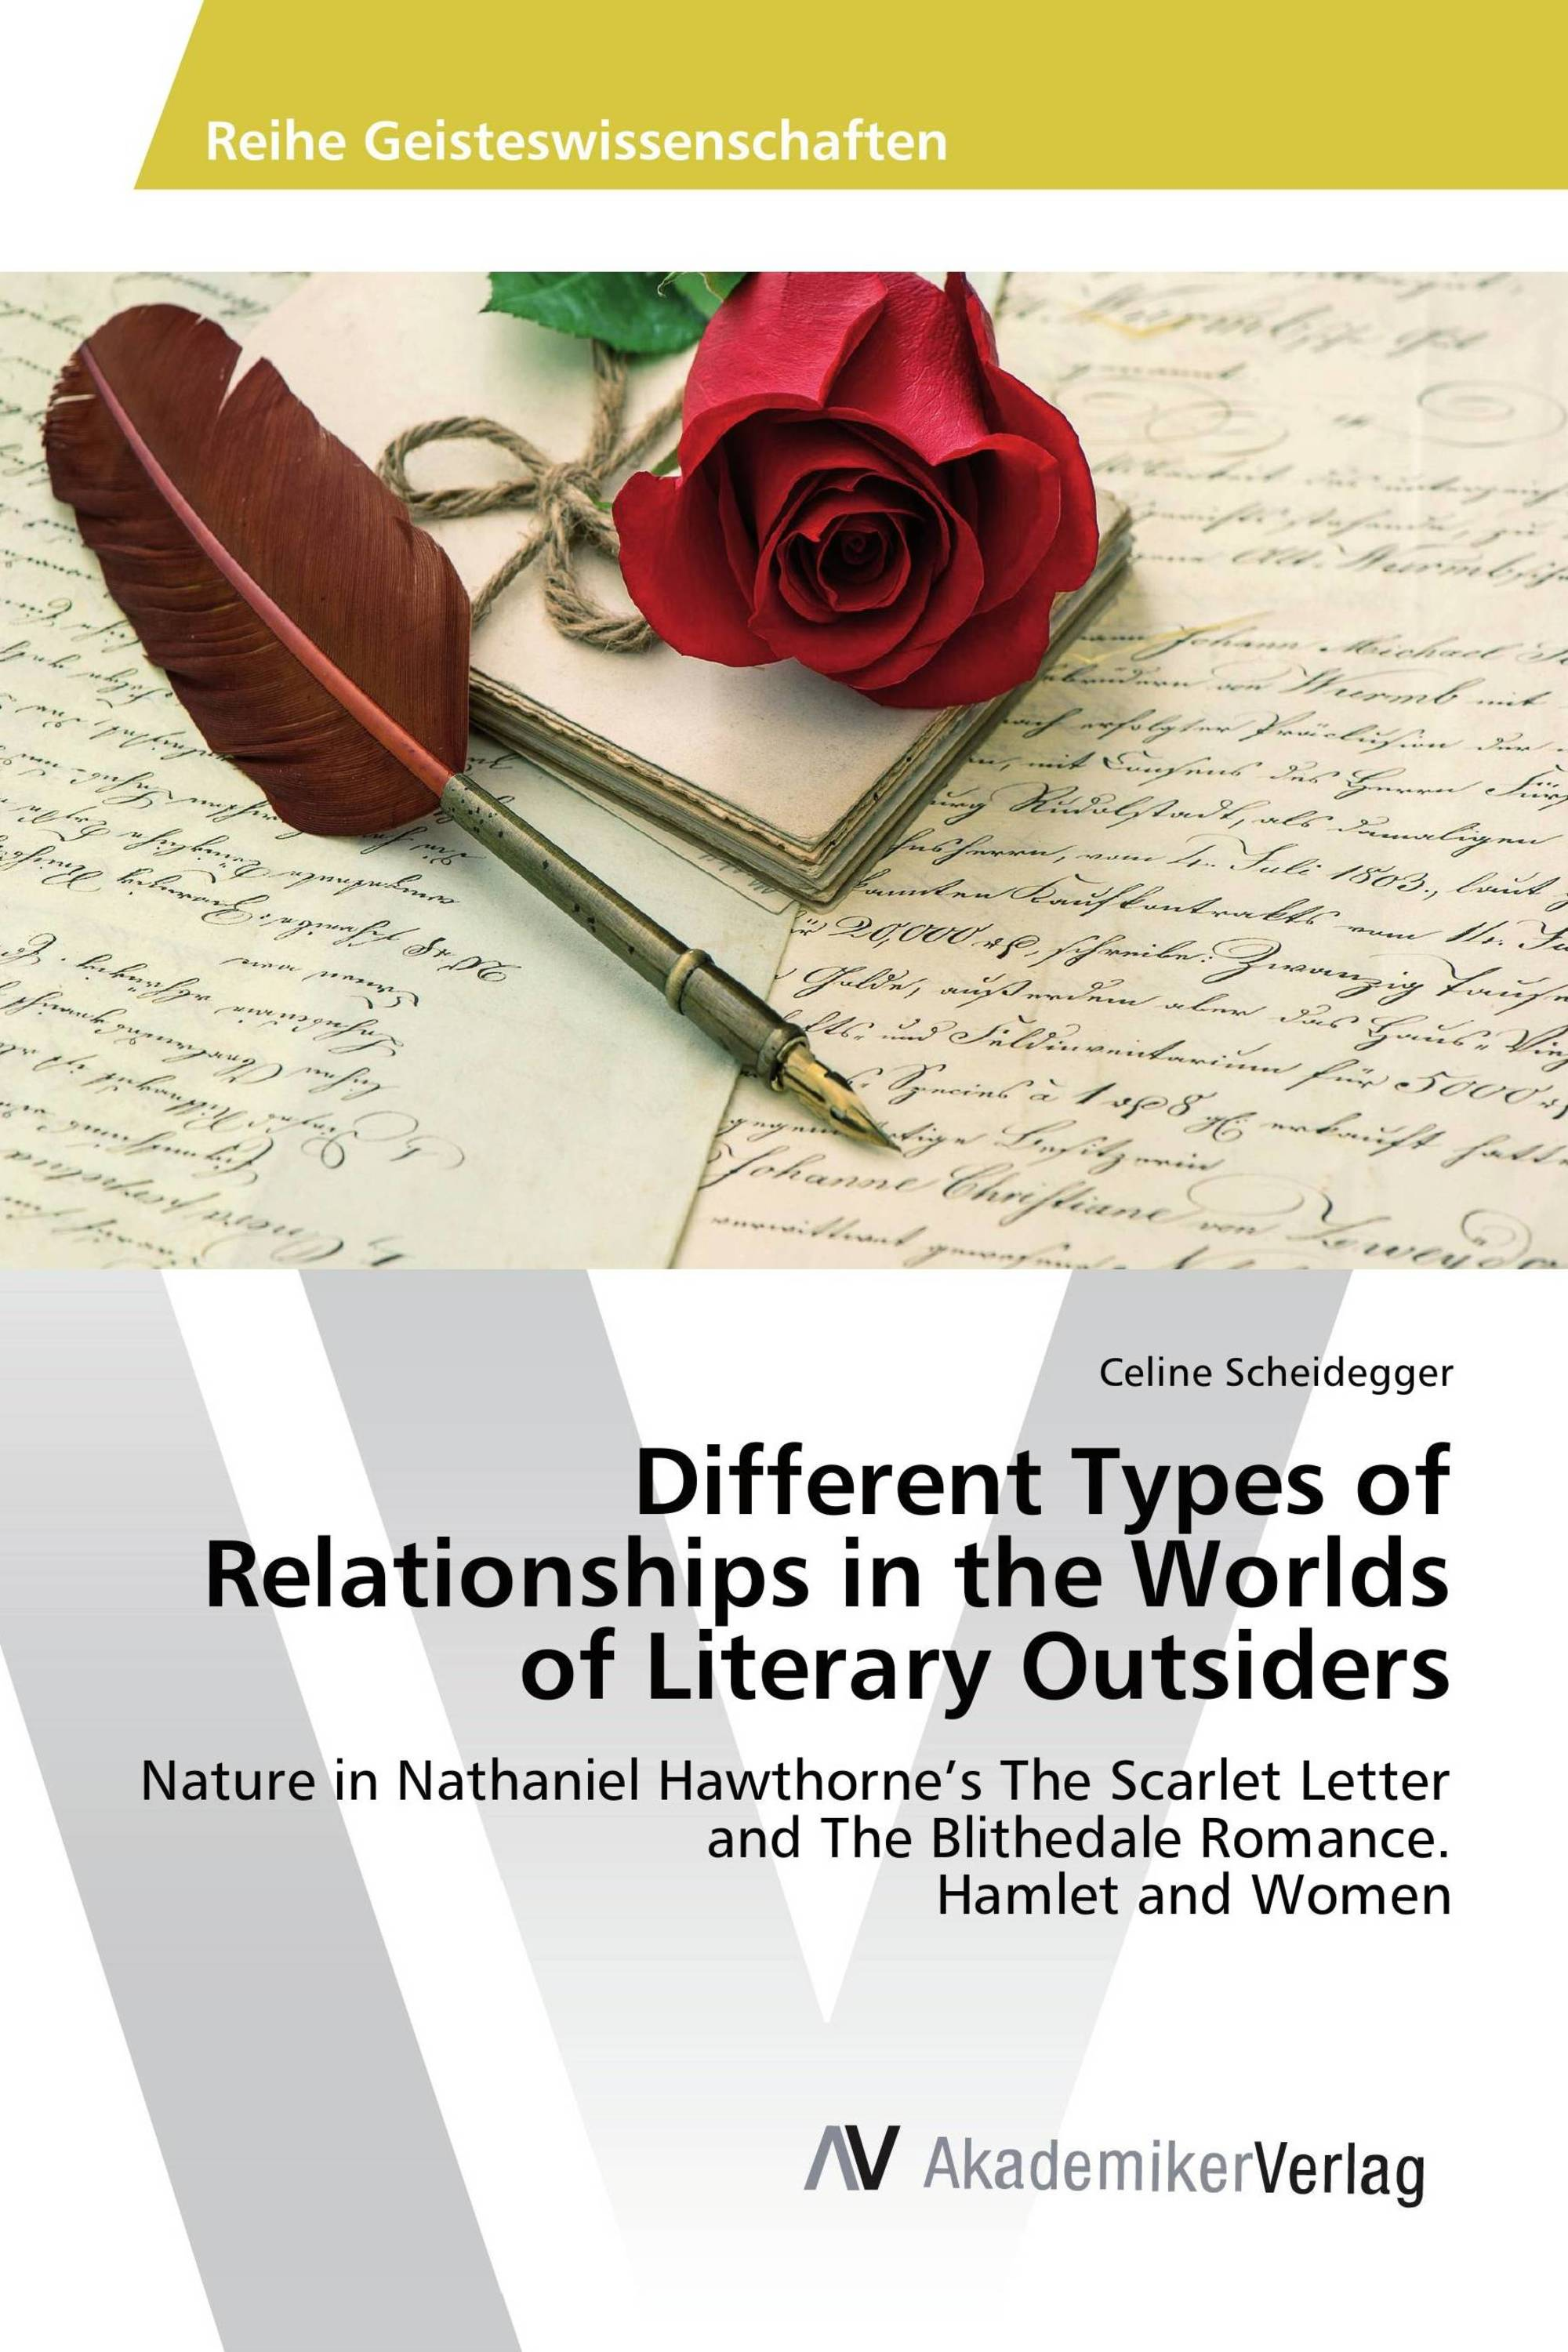 Different Types of Relationships in the Worlds of Literary Outsiders